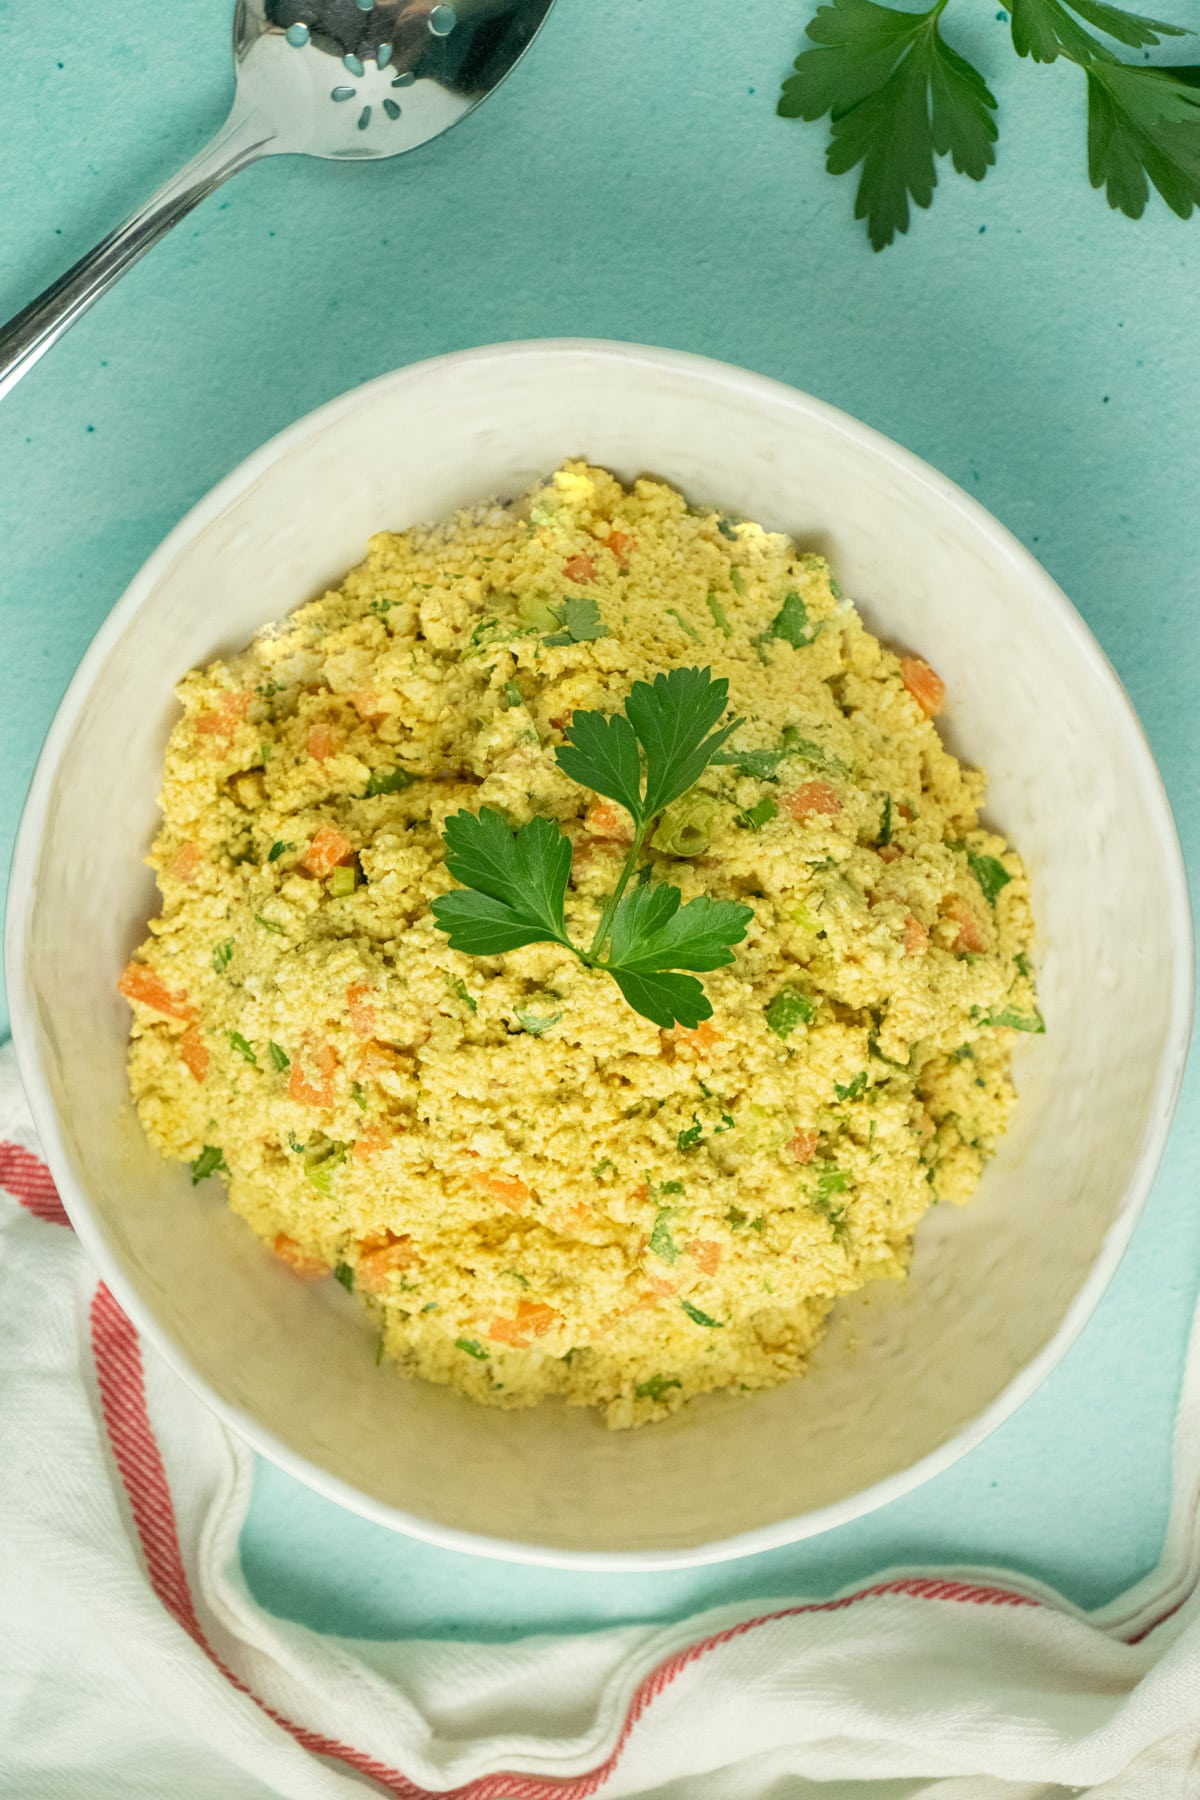 tofu egg salad in a white serving bowl with parsley garnish